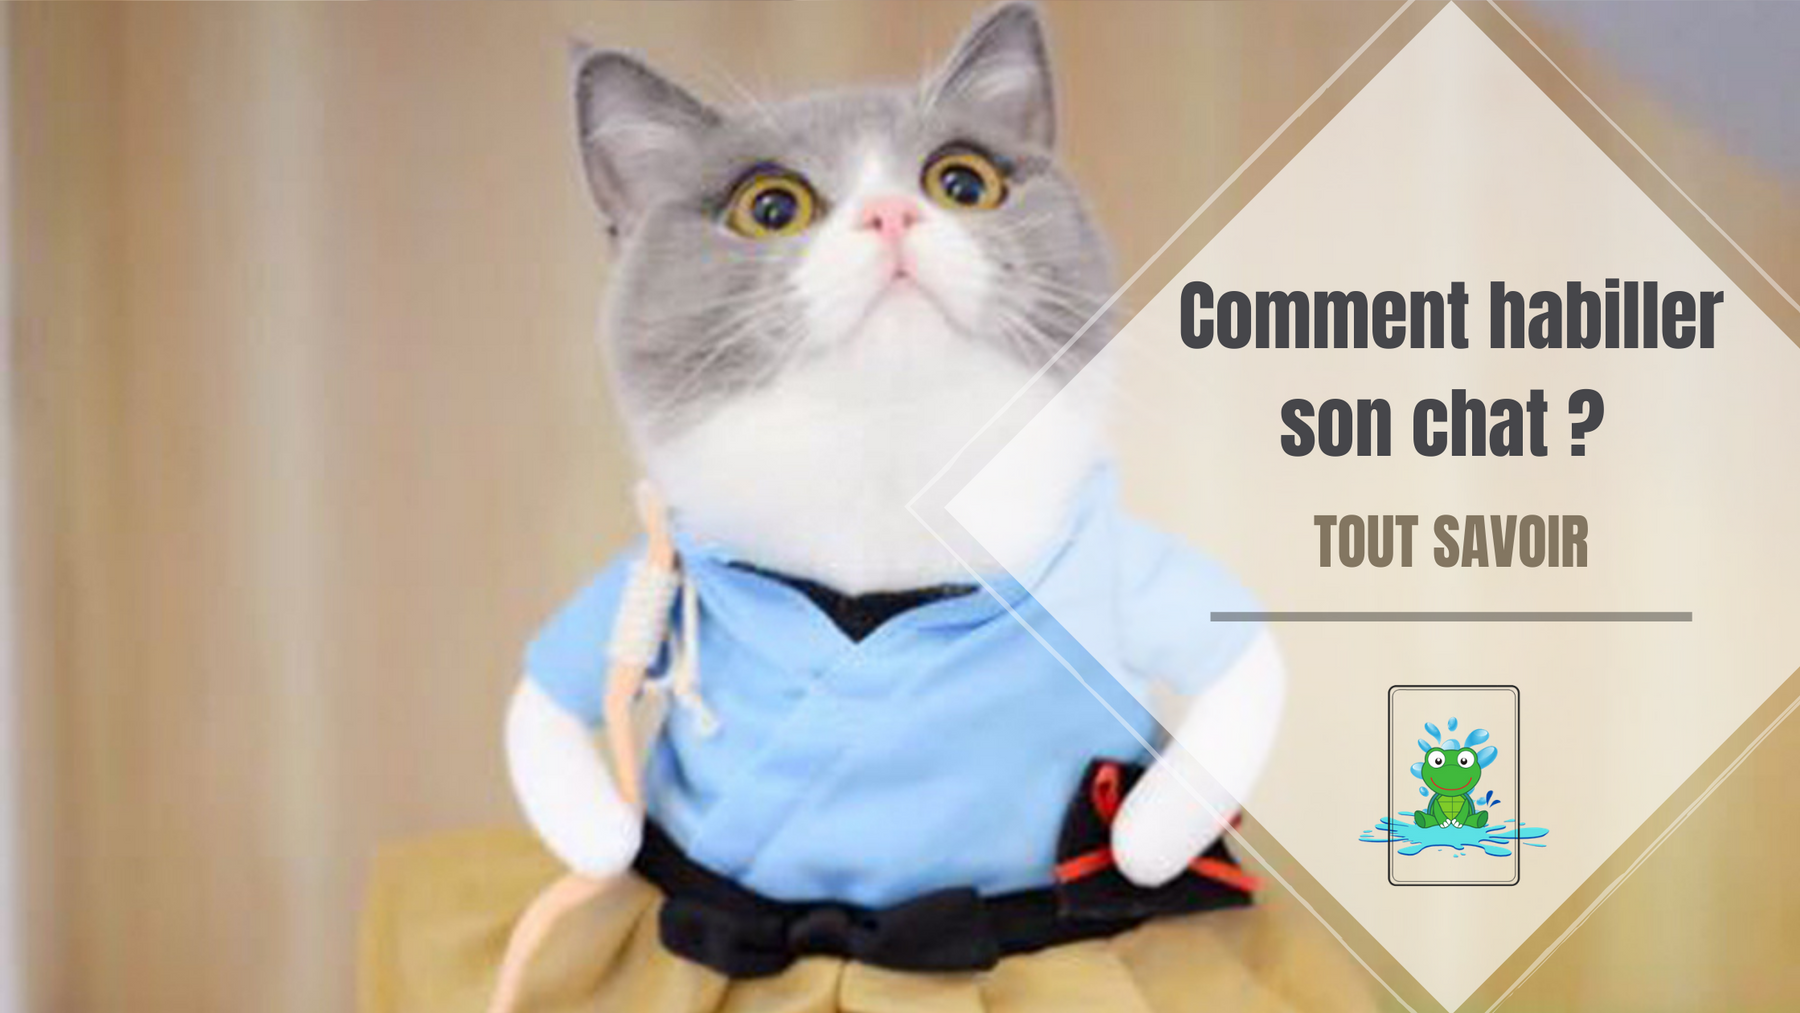 Comment habiller son chat ?